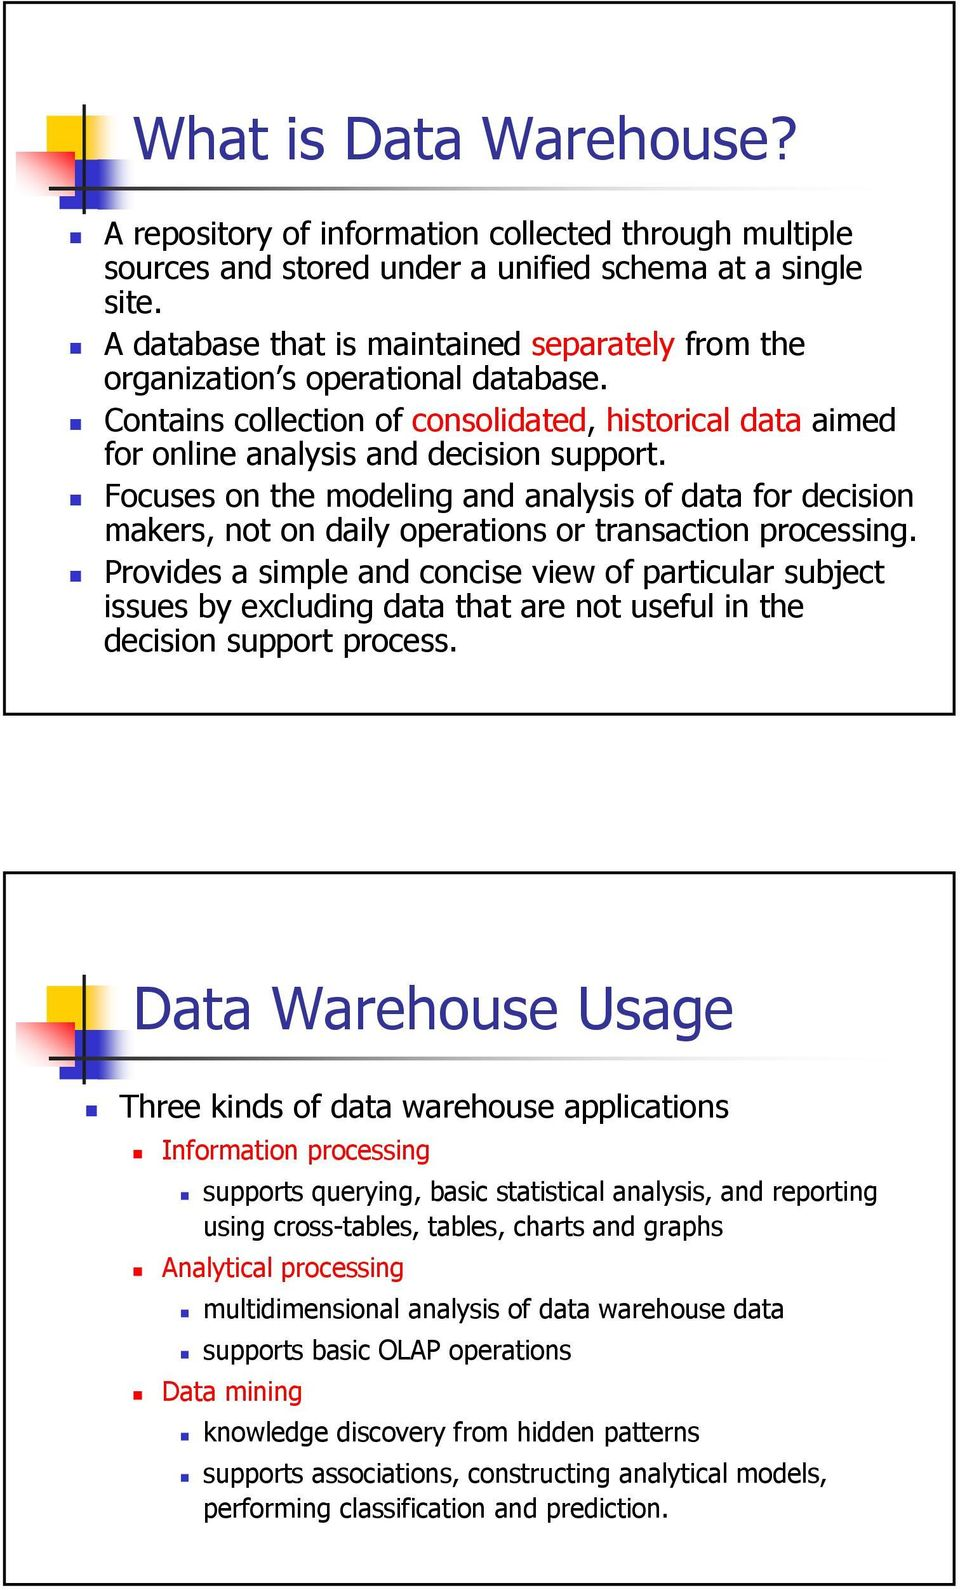 Focuses on the modeling and analysis of data for decision makers, not on daily operations or transaction processing.